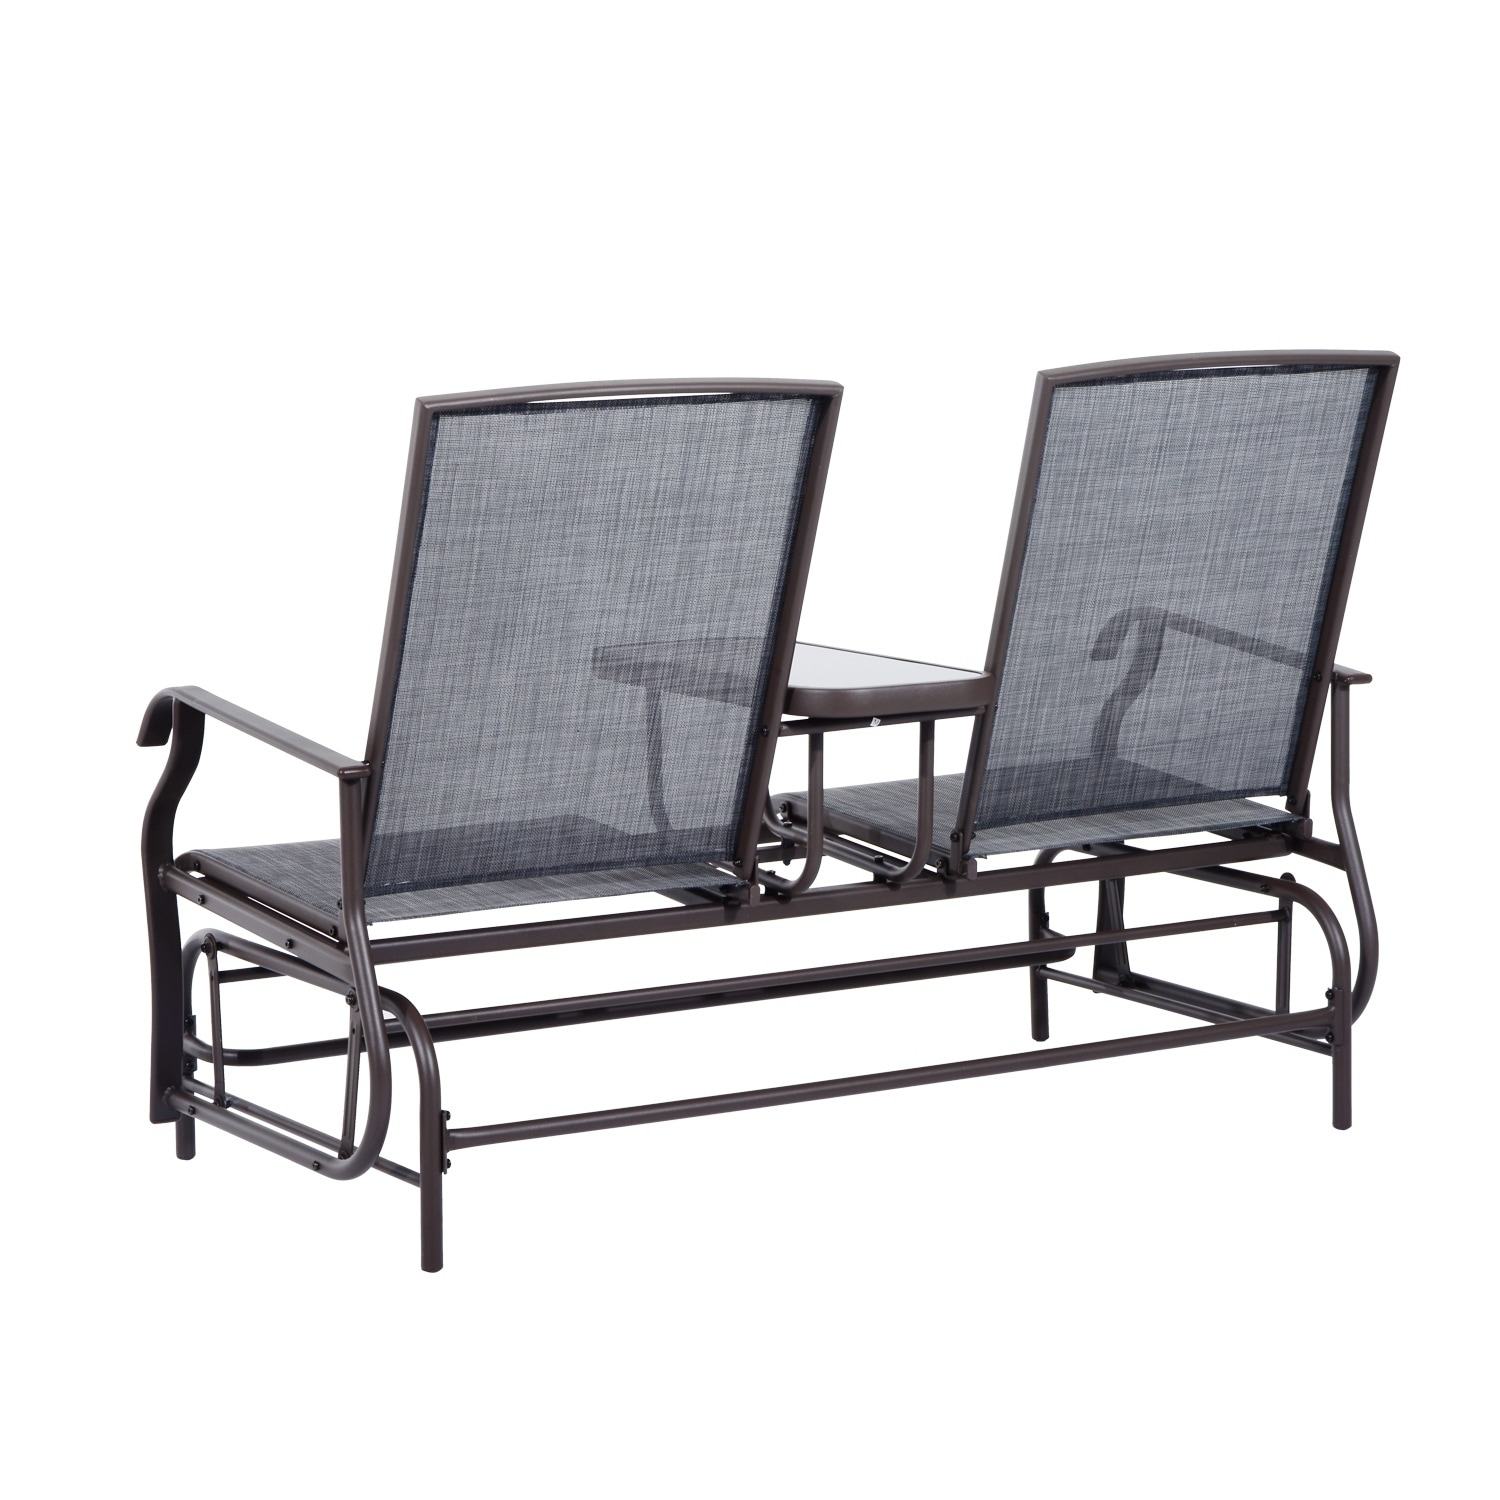 residence stylish outdoor chair great glider sitting pictures remodel patio